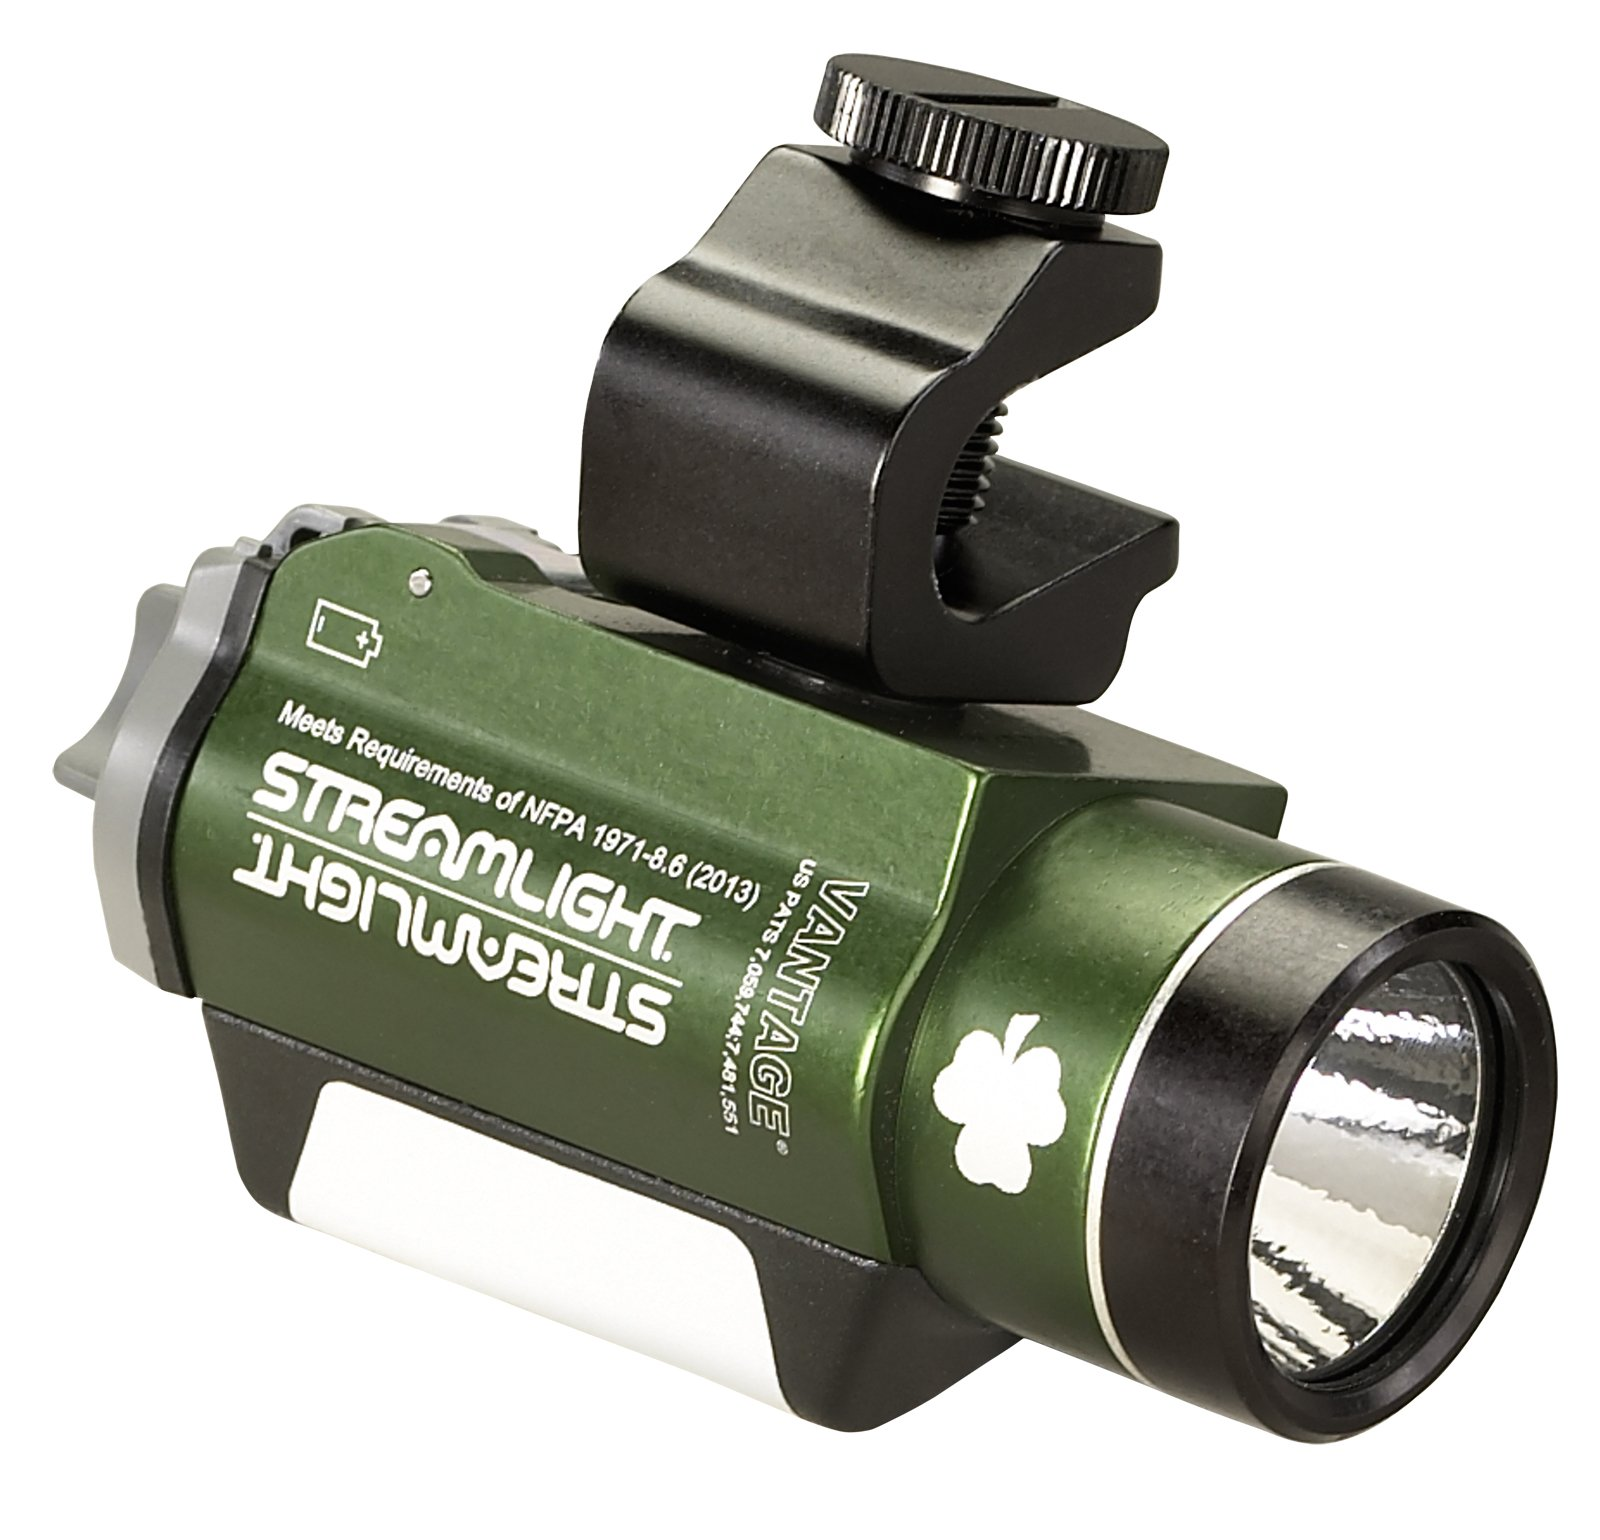 Streamlight 69189 Vantage Helmet Mounted Light with White/Green LEDs and Two 3-Volt CR123A Lithium Batteries, Coyote